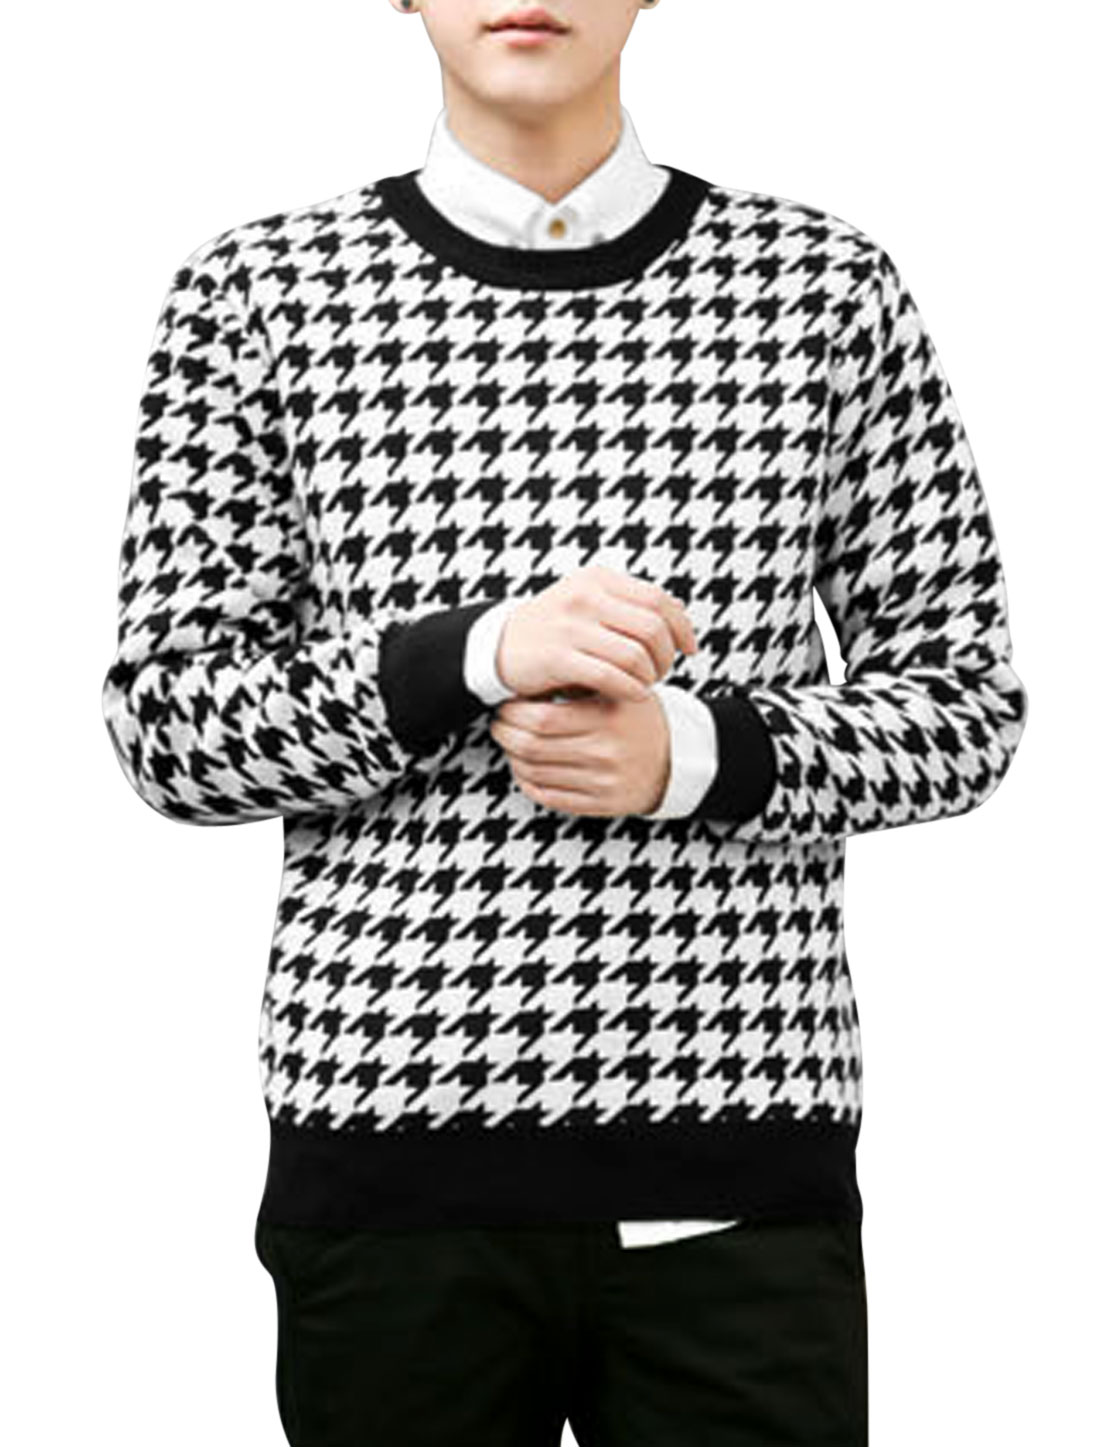 Men Black White Long Sleeves Round Neck Pullover Casual Sweatshirt S